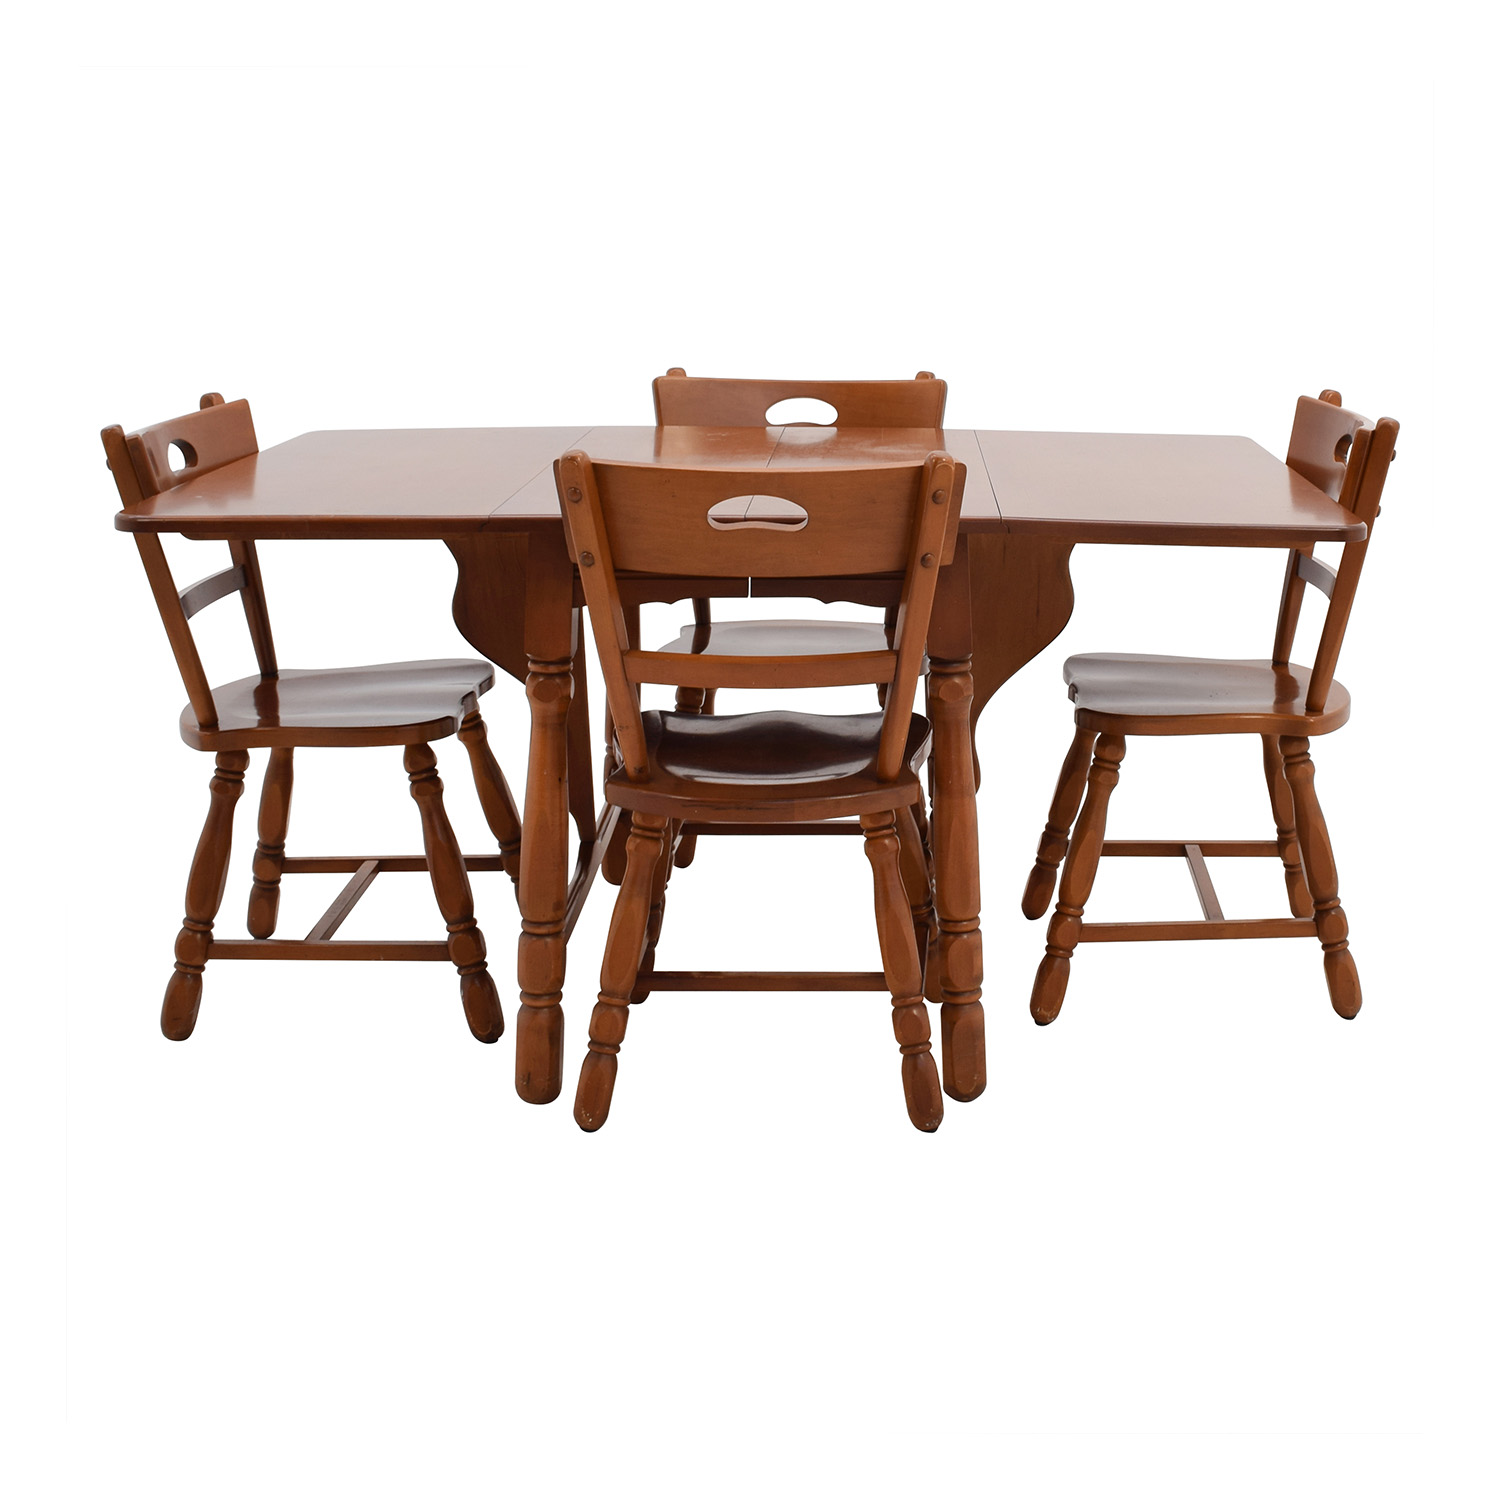 Maple Dining Table with Four Matching Chairs for sale